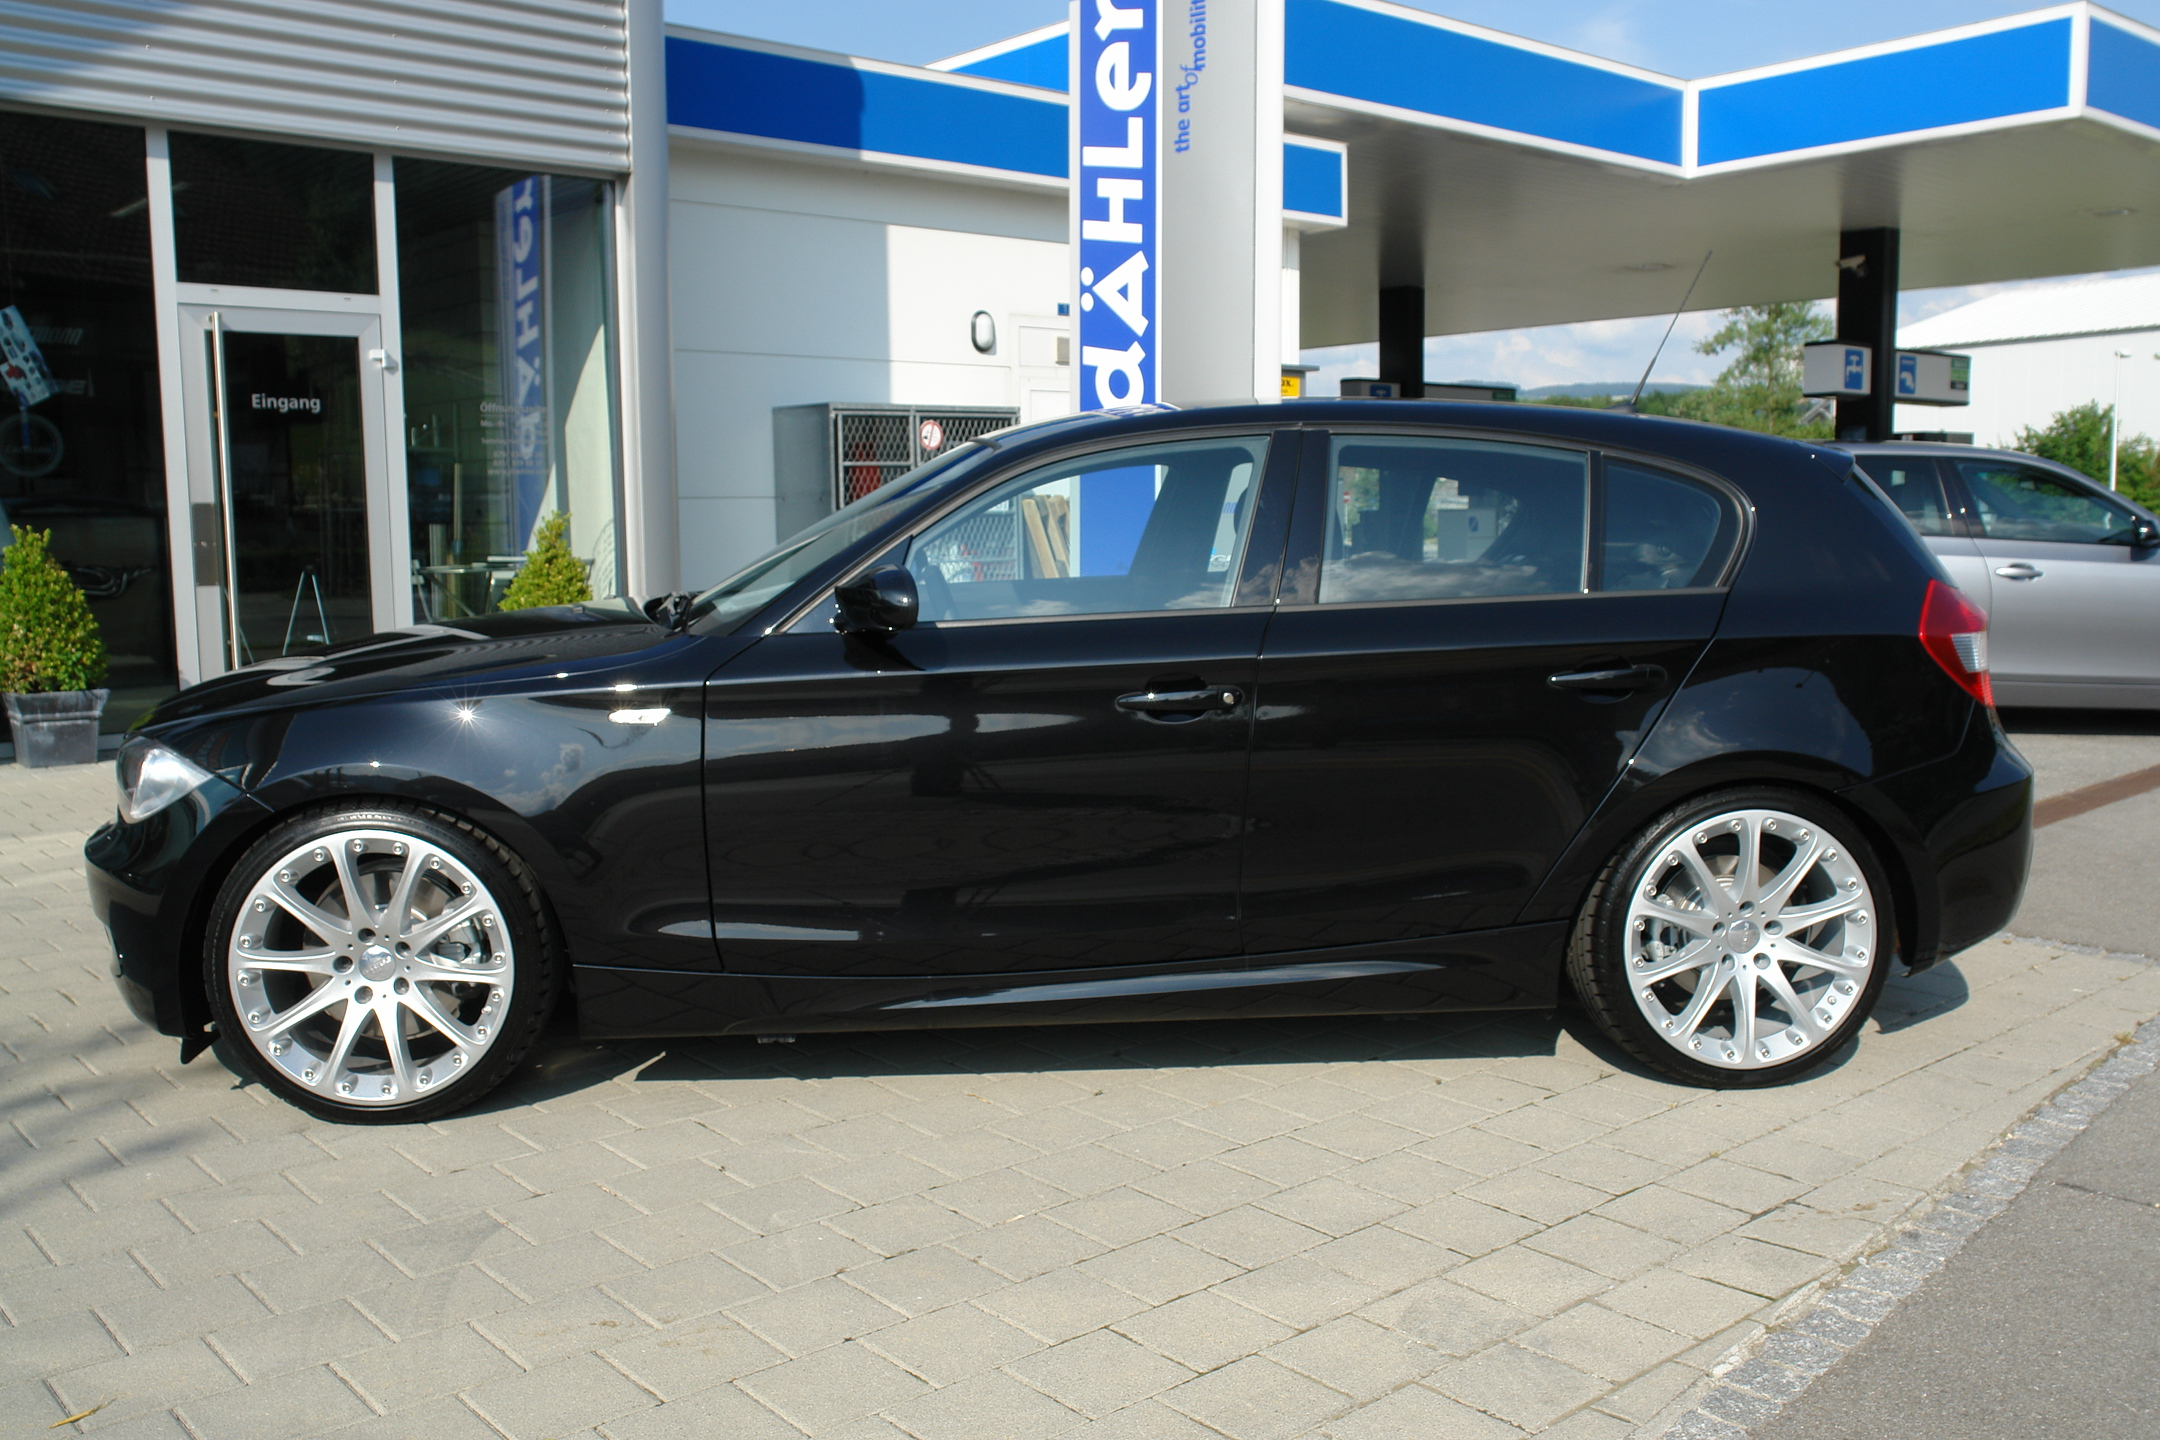 BMW 130i ~ All Cars in The World